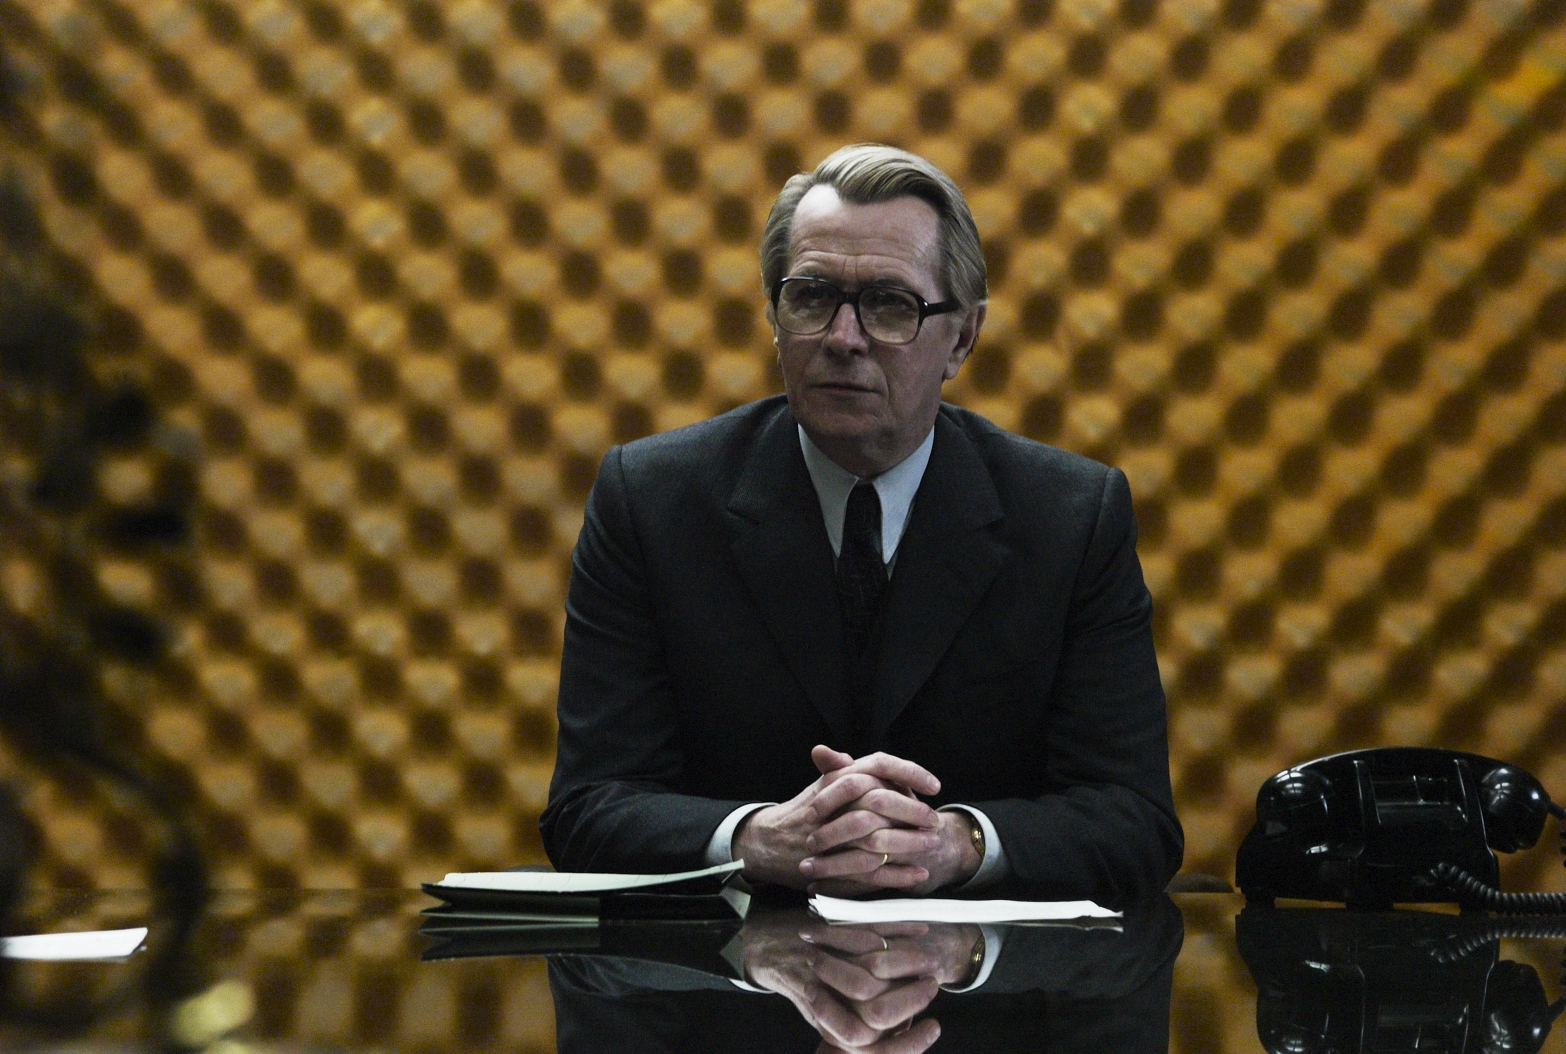 http://2.bp.blogspot.com/-M7SN_DSbCeY/ToE1_gSvykI/AAAAAAAAHW8/lLXWvlkPF4s/s1600/Smiley+in+front+of+yellow+soundproofing+Gary+Oldman+Tinker+Tailor+Soldier+Spy.jpg